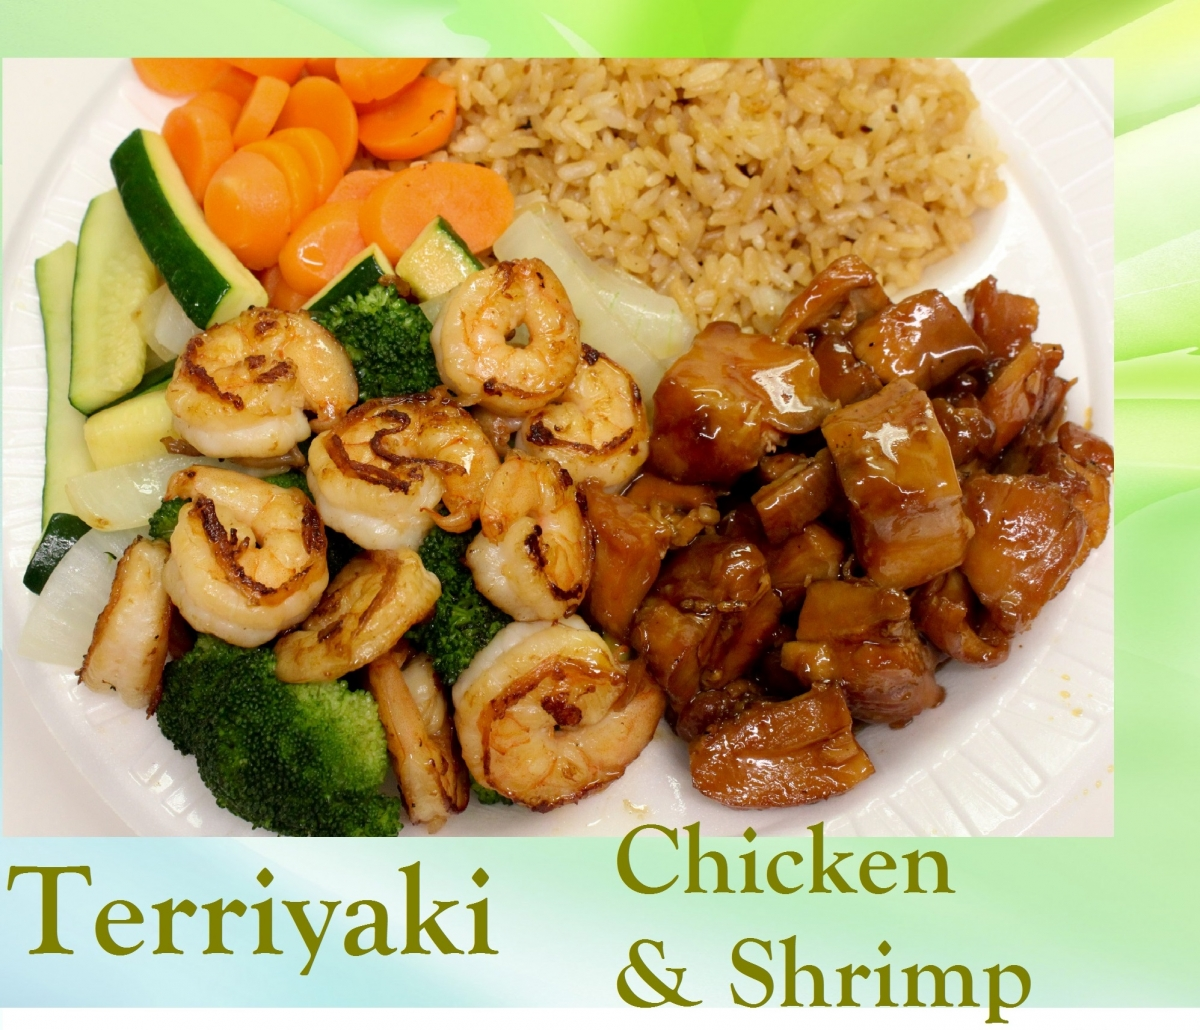 Terriyaki Chicken and Shrimp